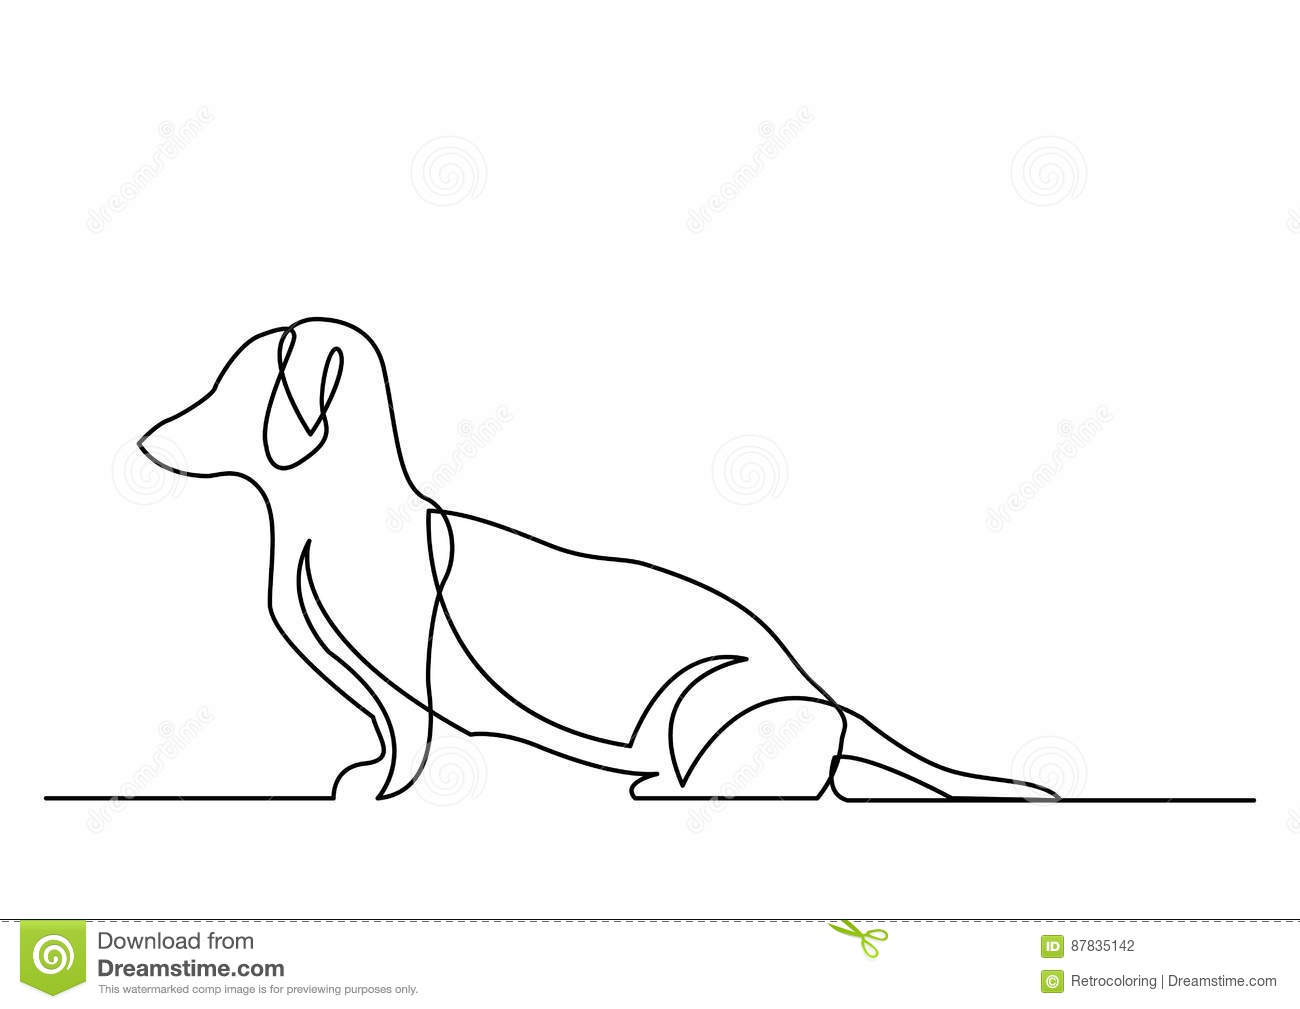 Line Drawing Dachshund : Continuous line drawing of dachshund dog stock vector